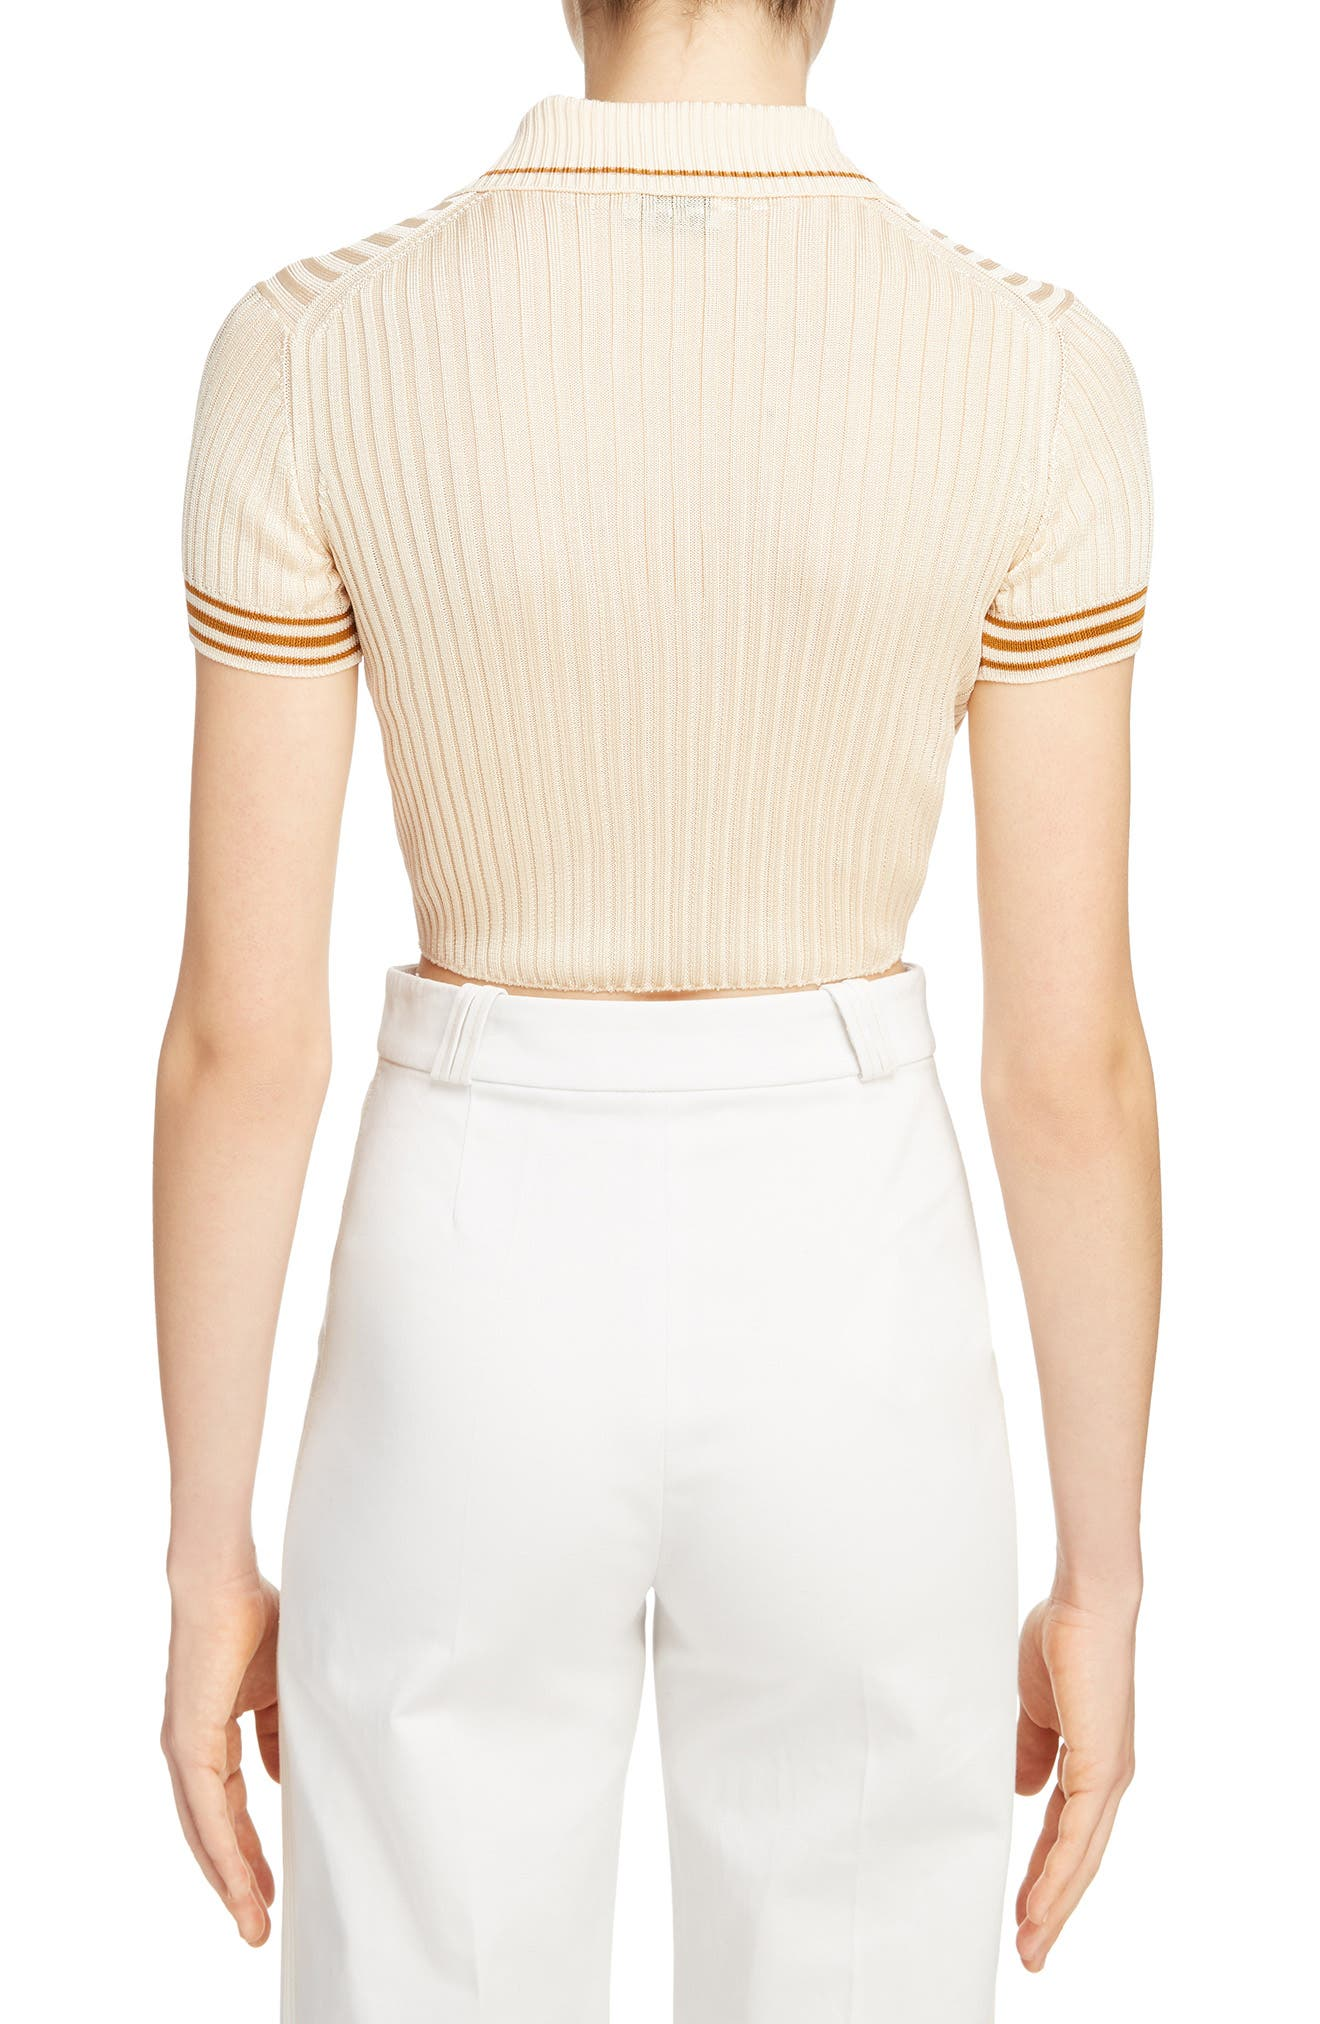 Shanita Lingerie Crop Polo Sweater,                             Alternate thumbnail 2, color,                             250